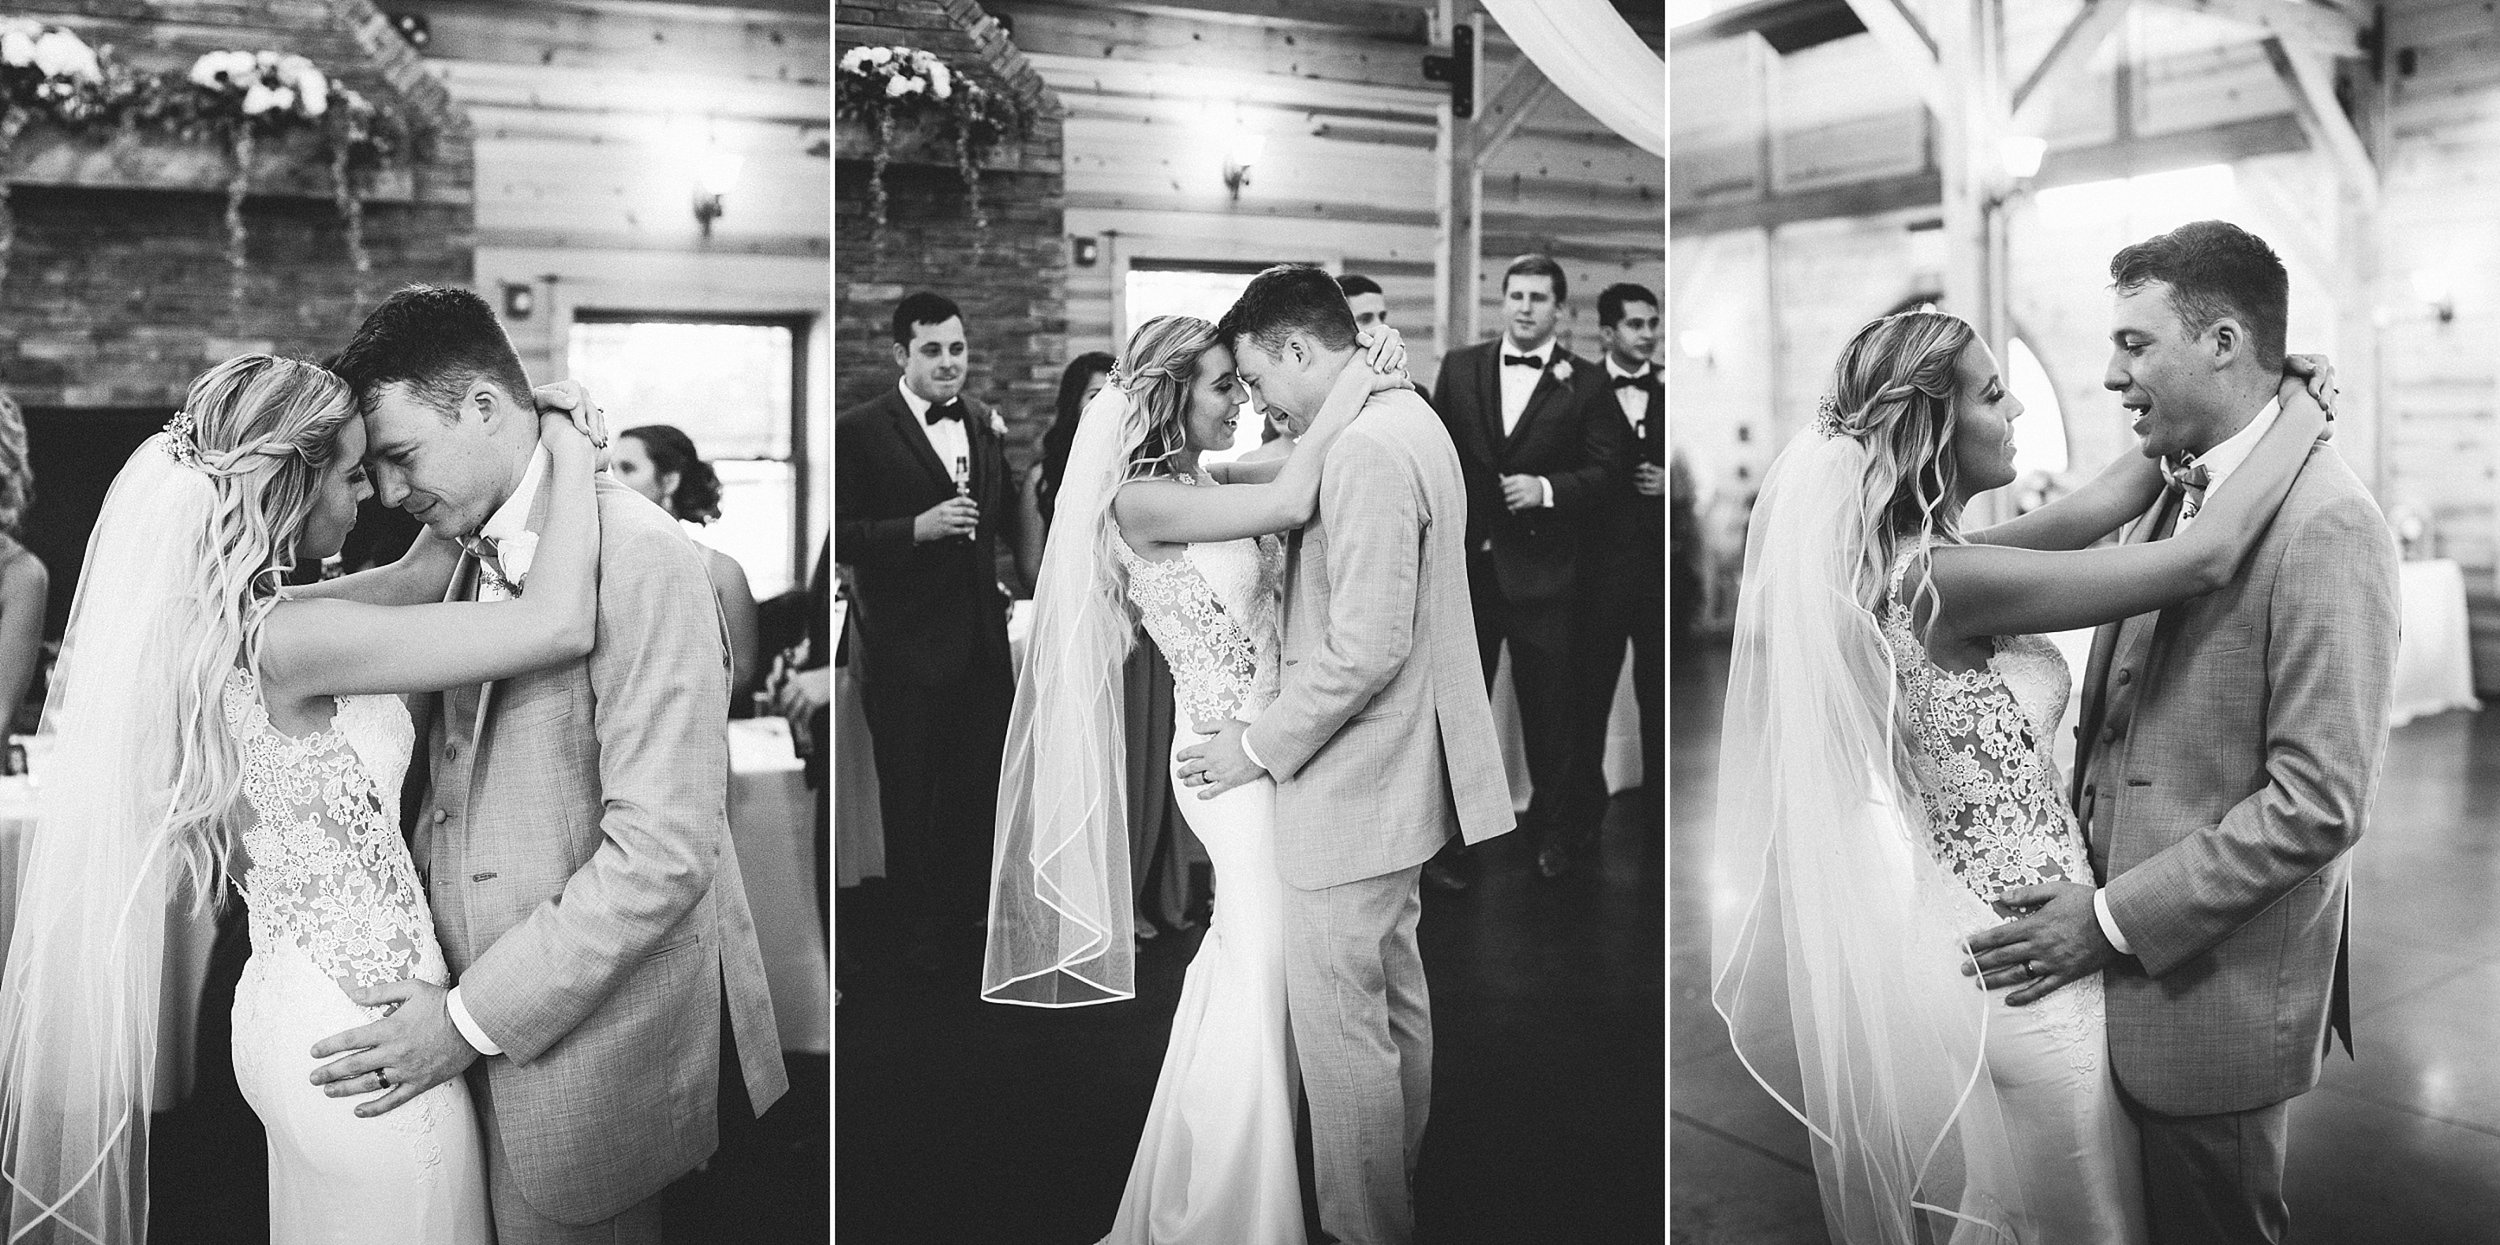 Brooke Townsend Photography - Cincinnati Wedding Photographer (193 of 230).jpg